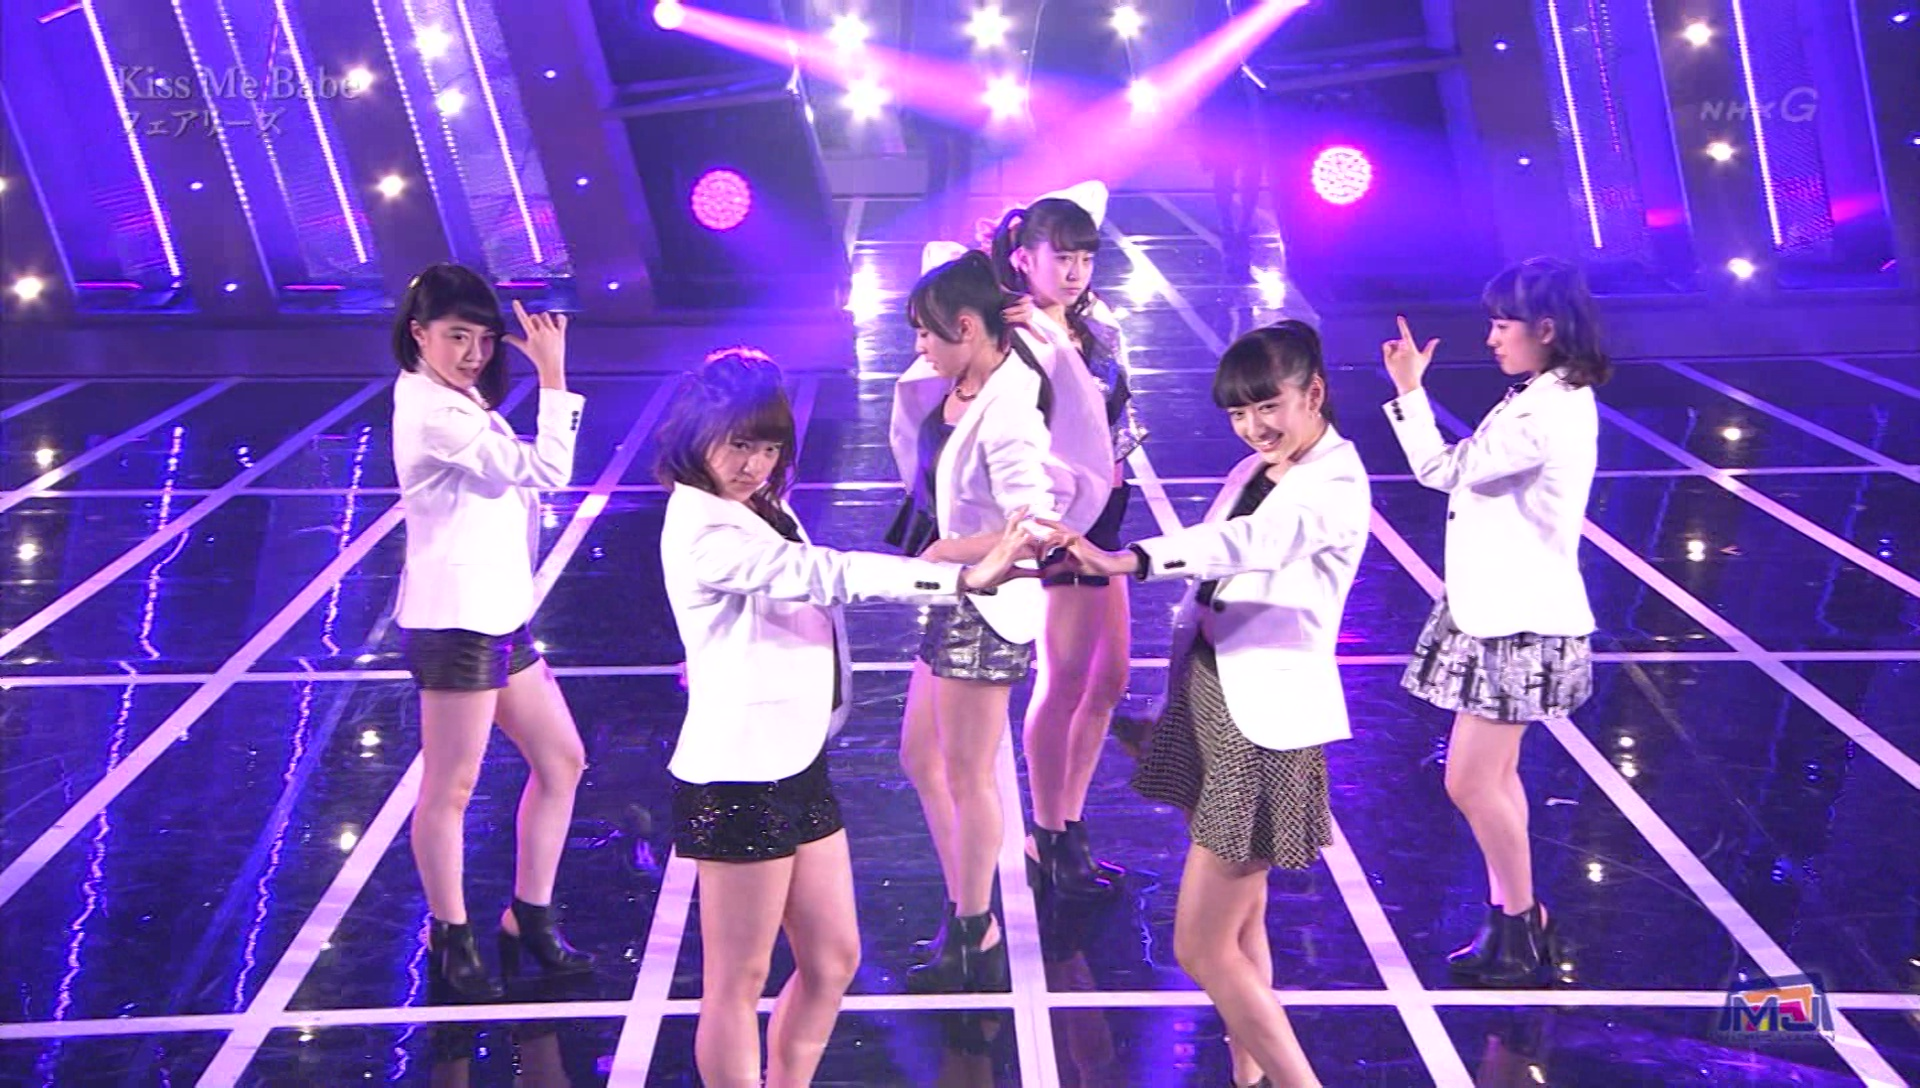 20160803.02.27 Fairies - Kiss Me Babe (Music Japan 2015.04.05 HDTV) (JPOP.ru).ts.jpg